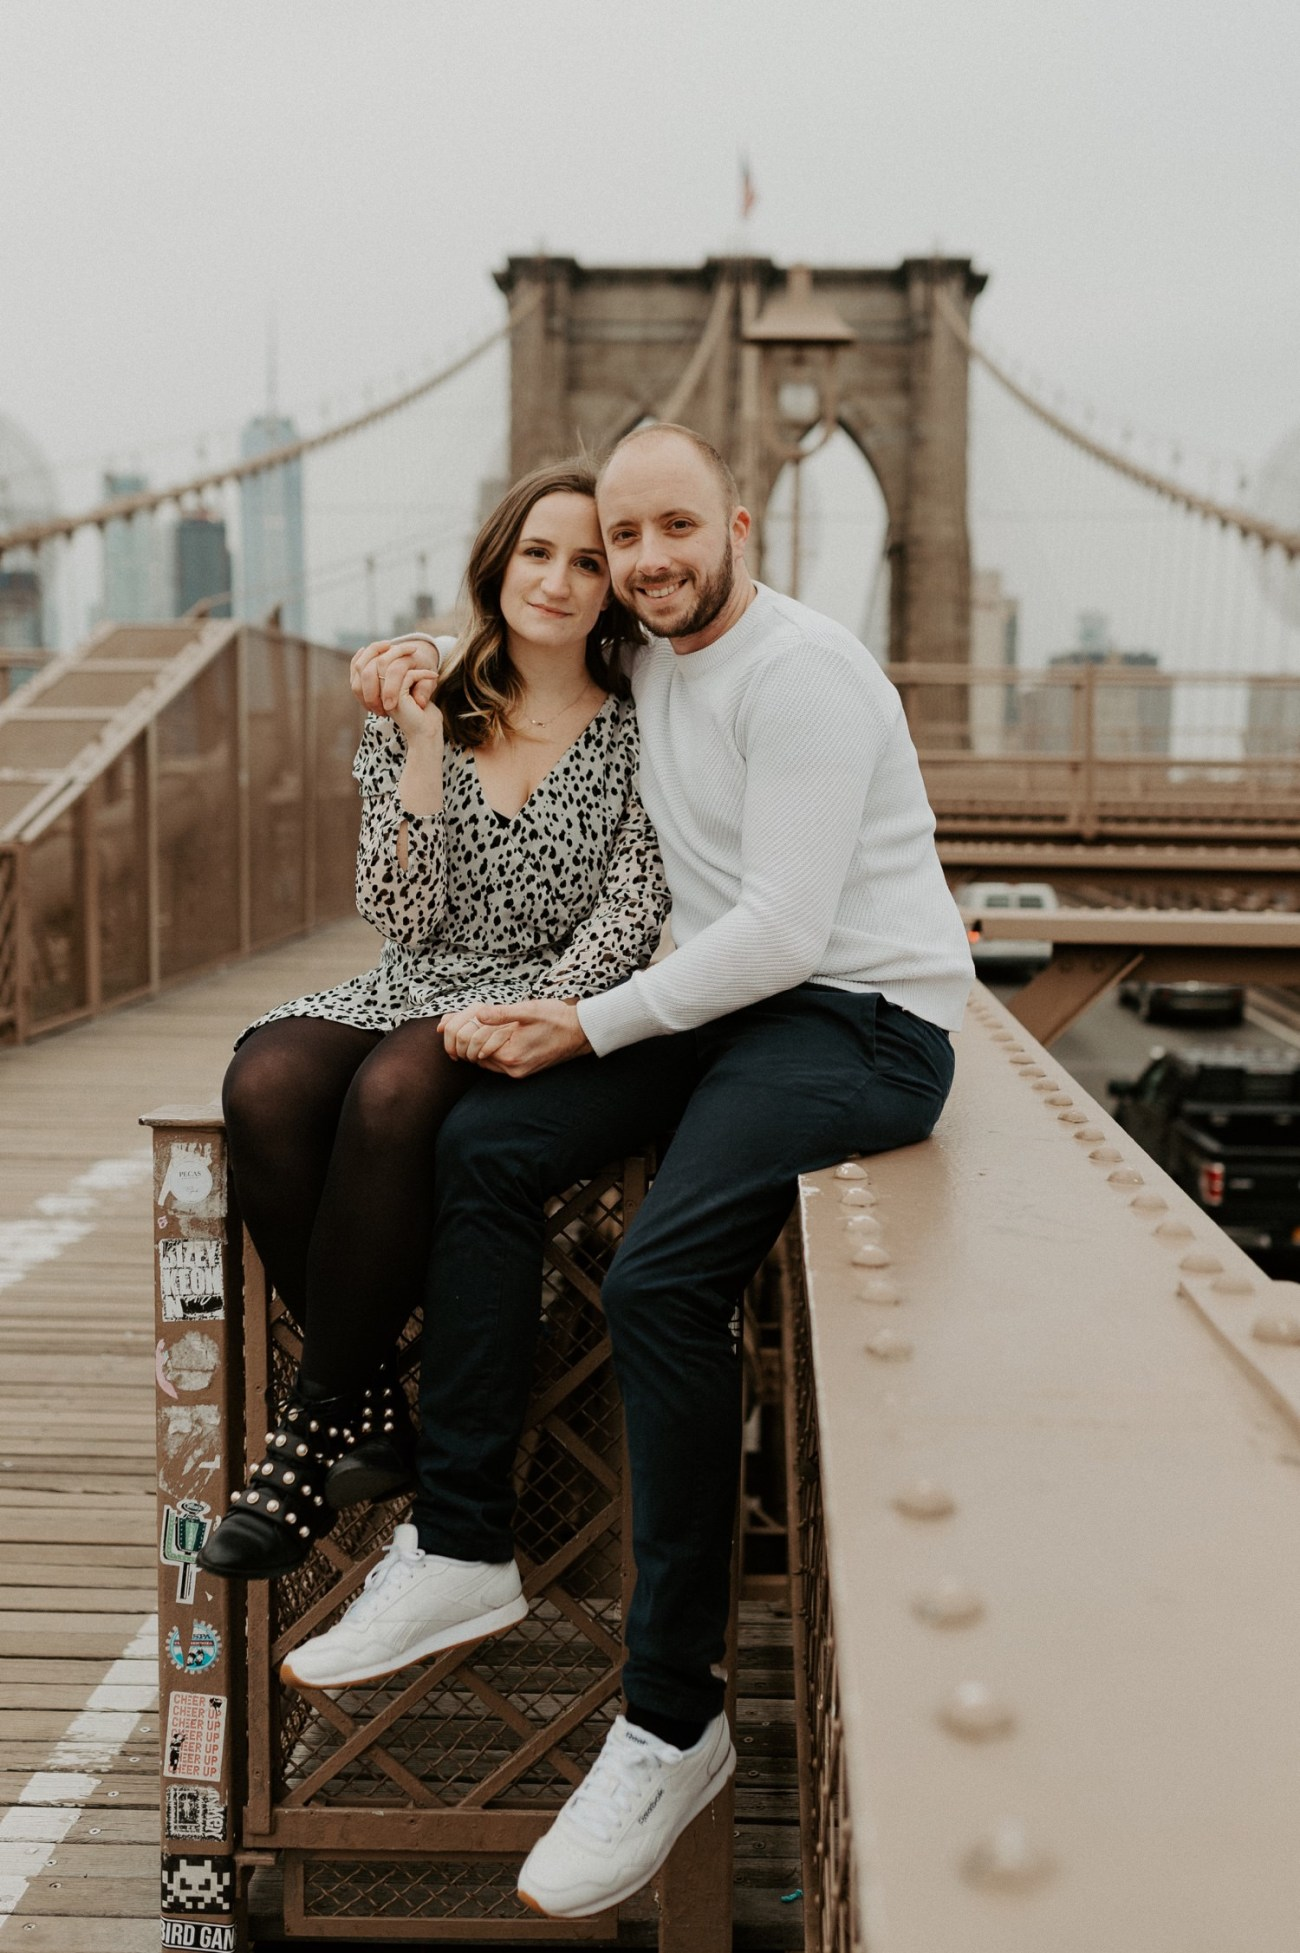 Brooklyn Bridge Engagement Photos Brooklyn Dumbo Couple Session NYC Wedding Photographer Anais Possamai Photography 12